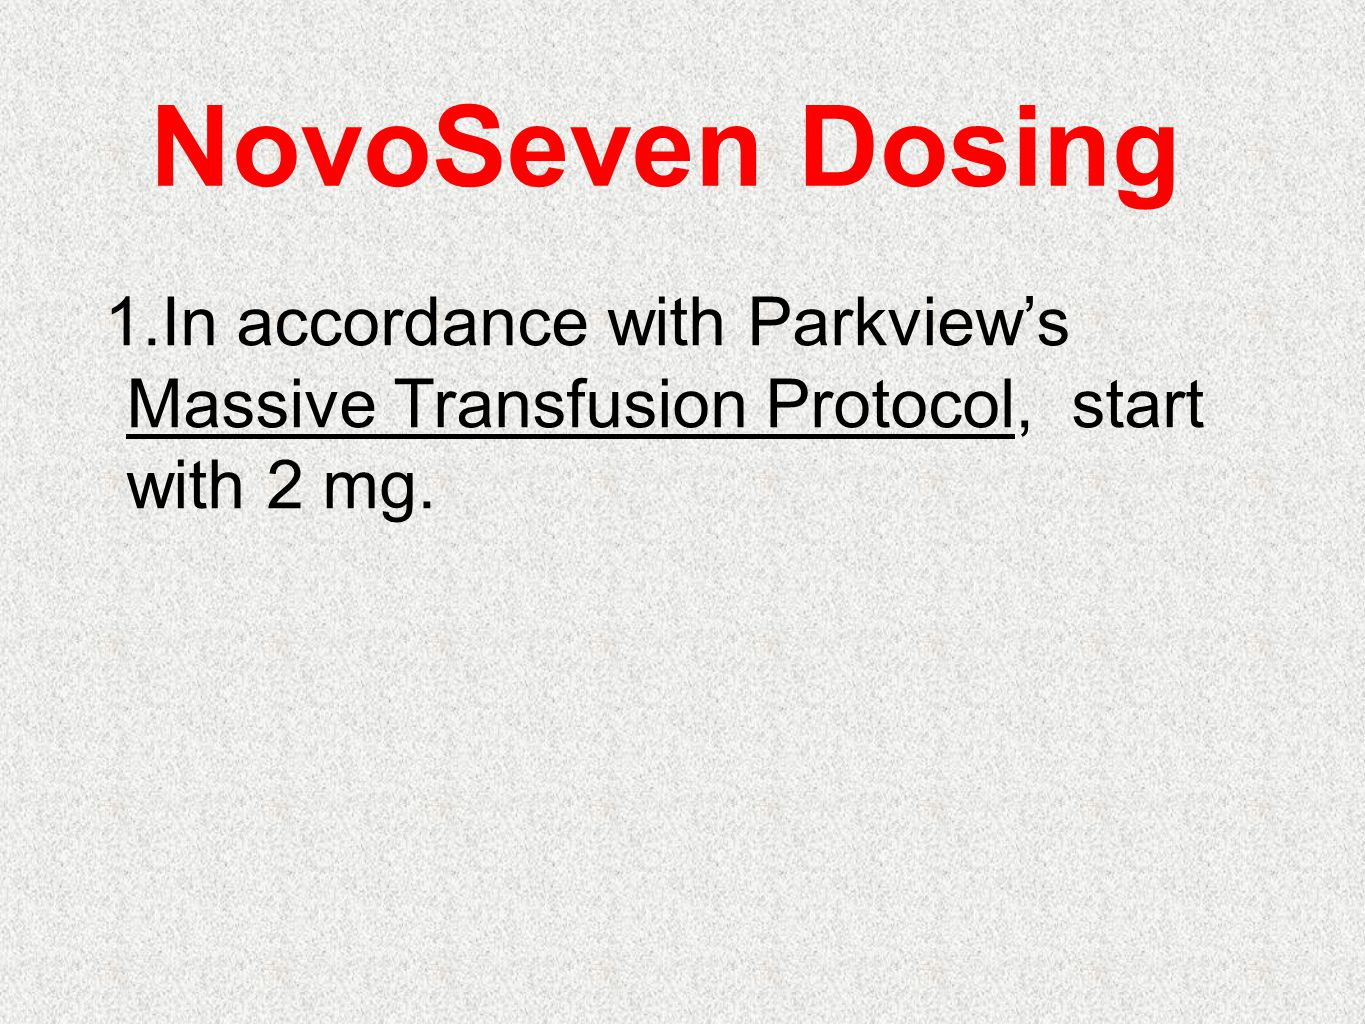 NovoSeven Dosing In accordance with Parkview's Massive Transfusion Protocol, start with 2 mg.